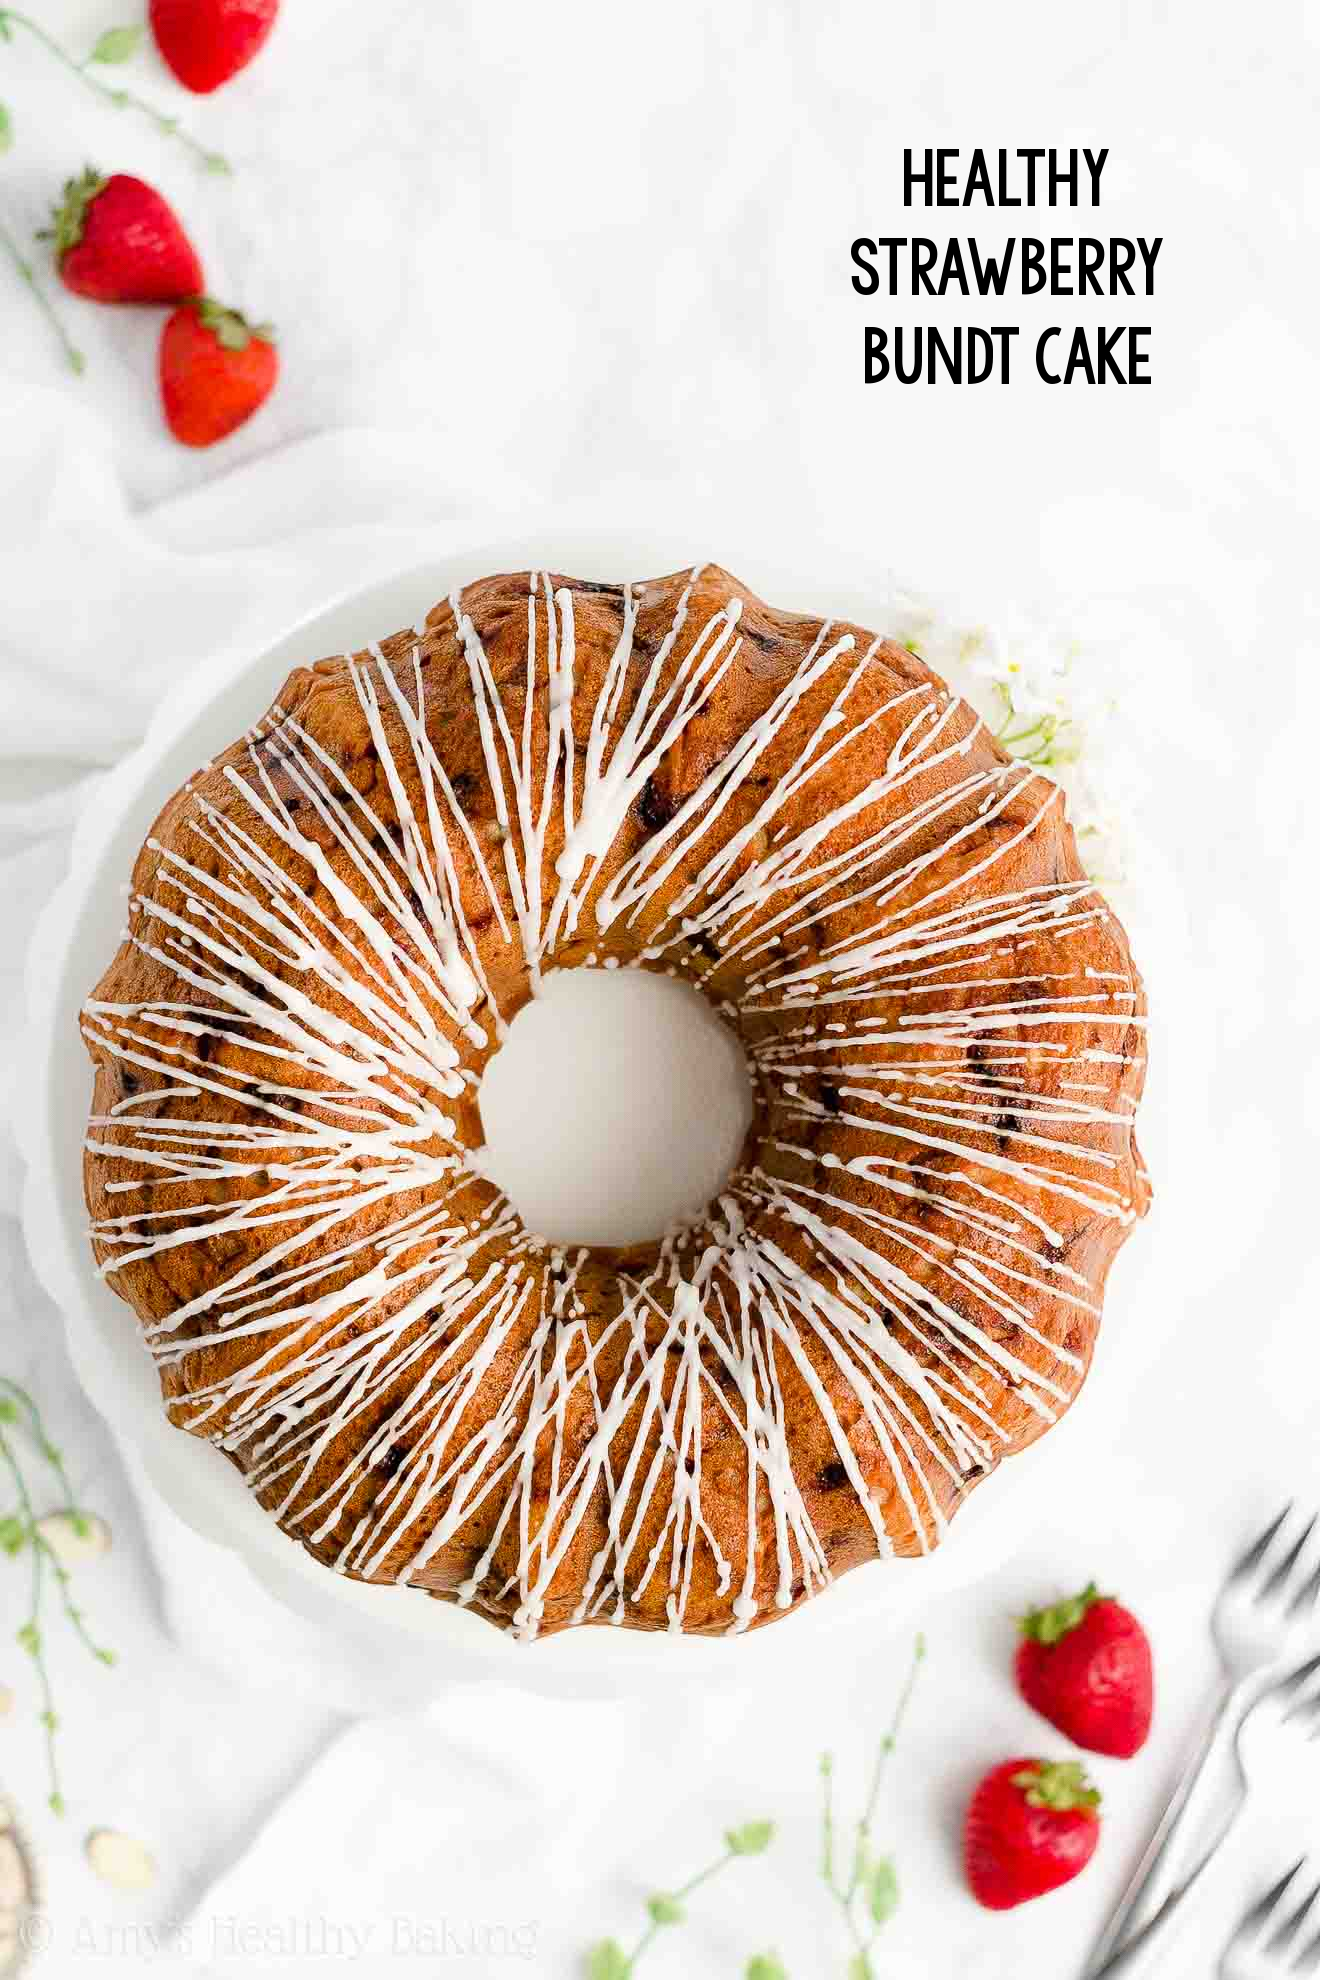 Best Easy Healthy Low Calorie Clean Eating Strawberry Bundt Cake From Scratch